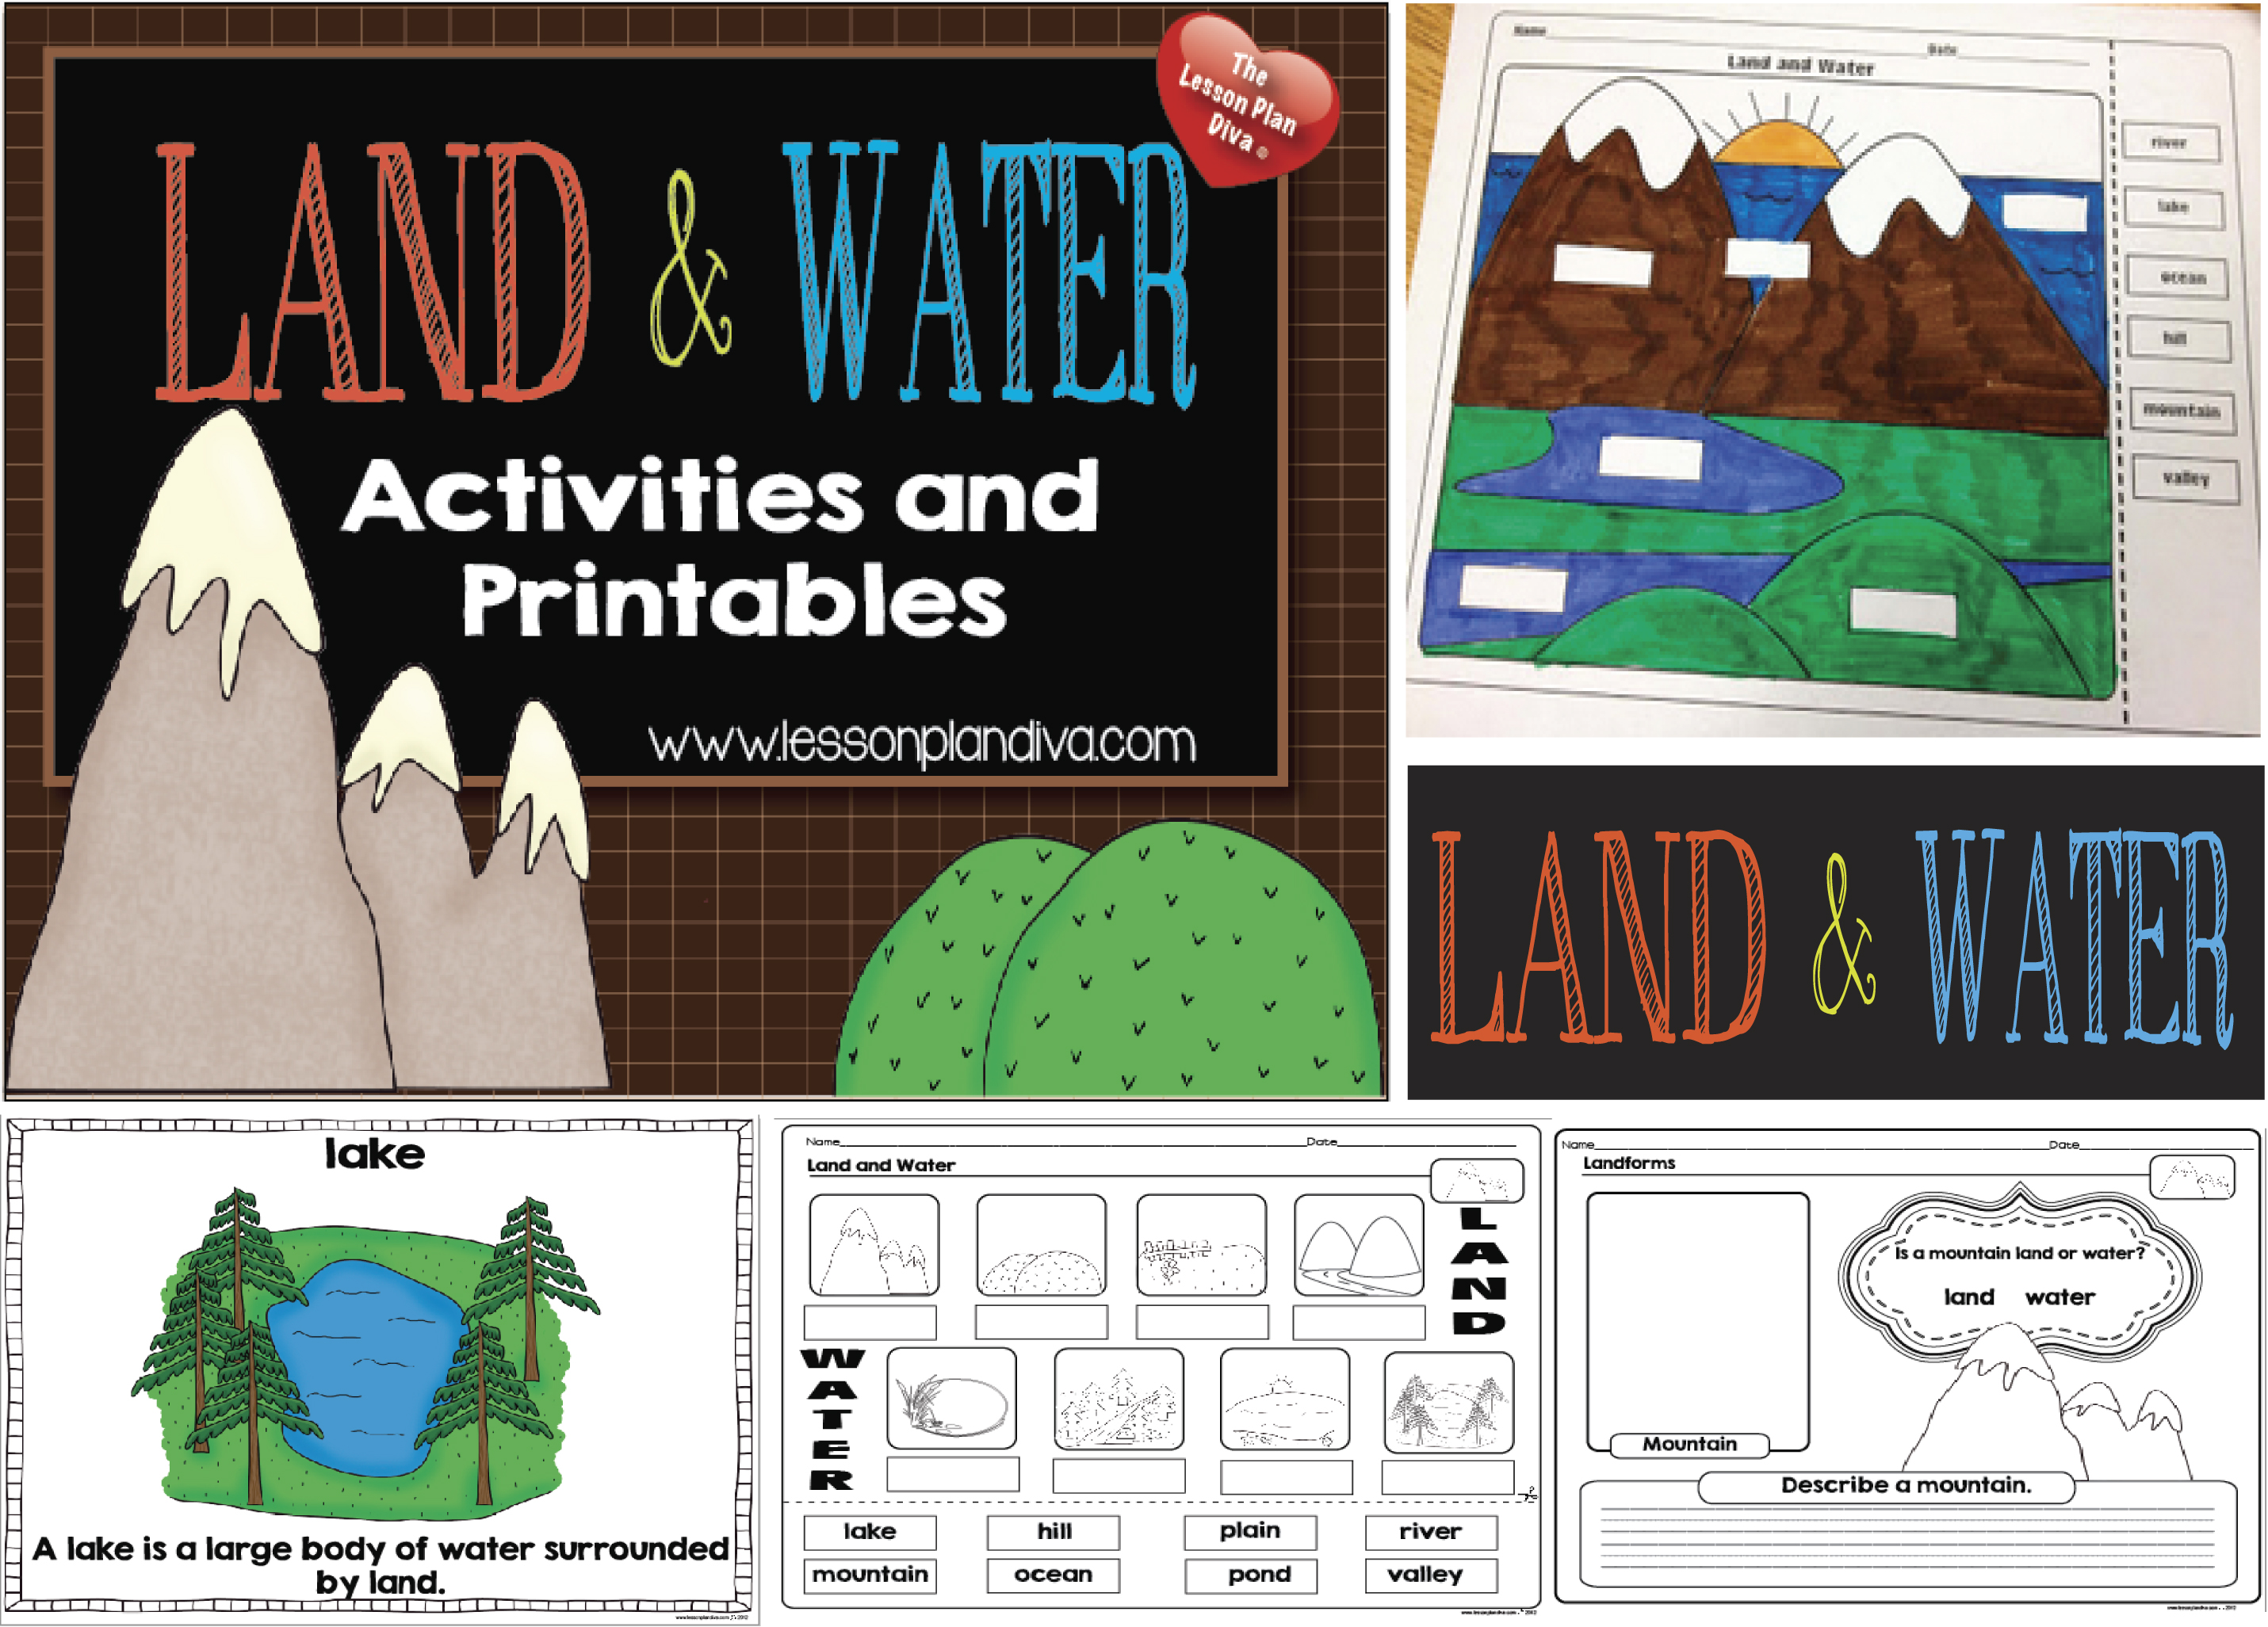 Worksheets Landforms And Bodies Of Water Worksheet landforms and bodies of water freebie the lesson plan diva landandwater